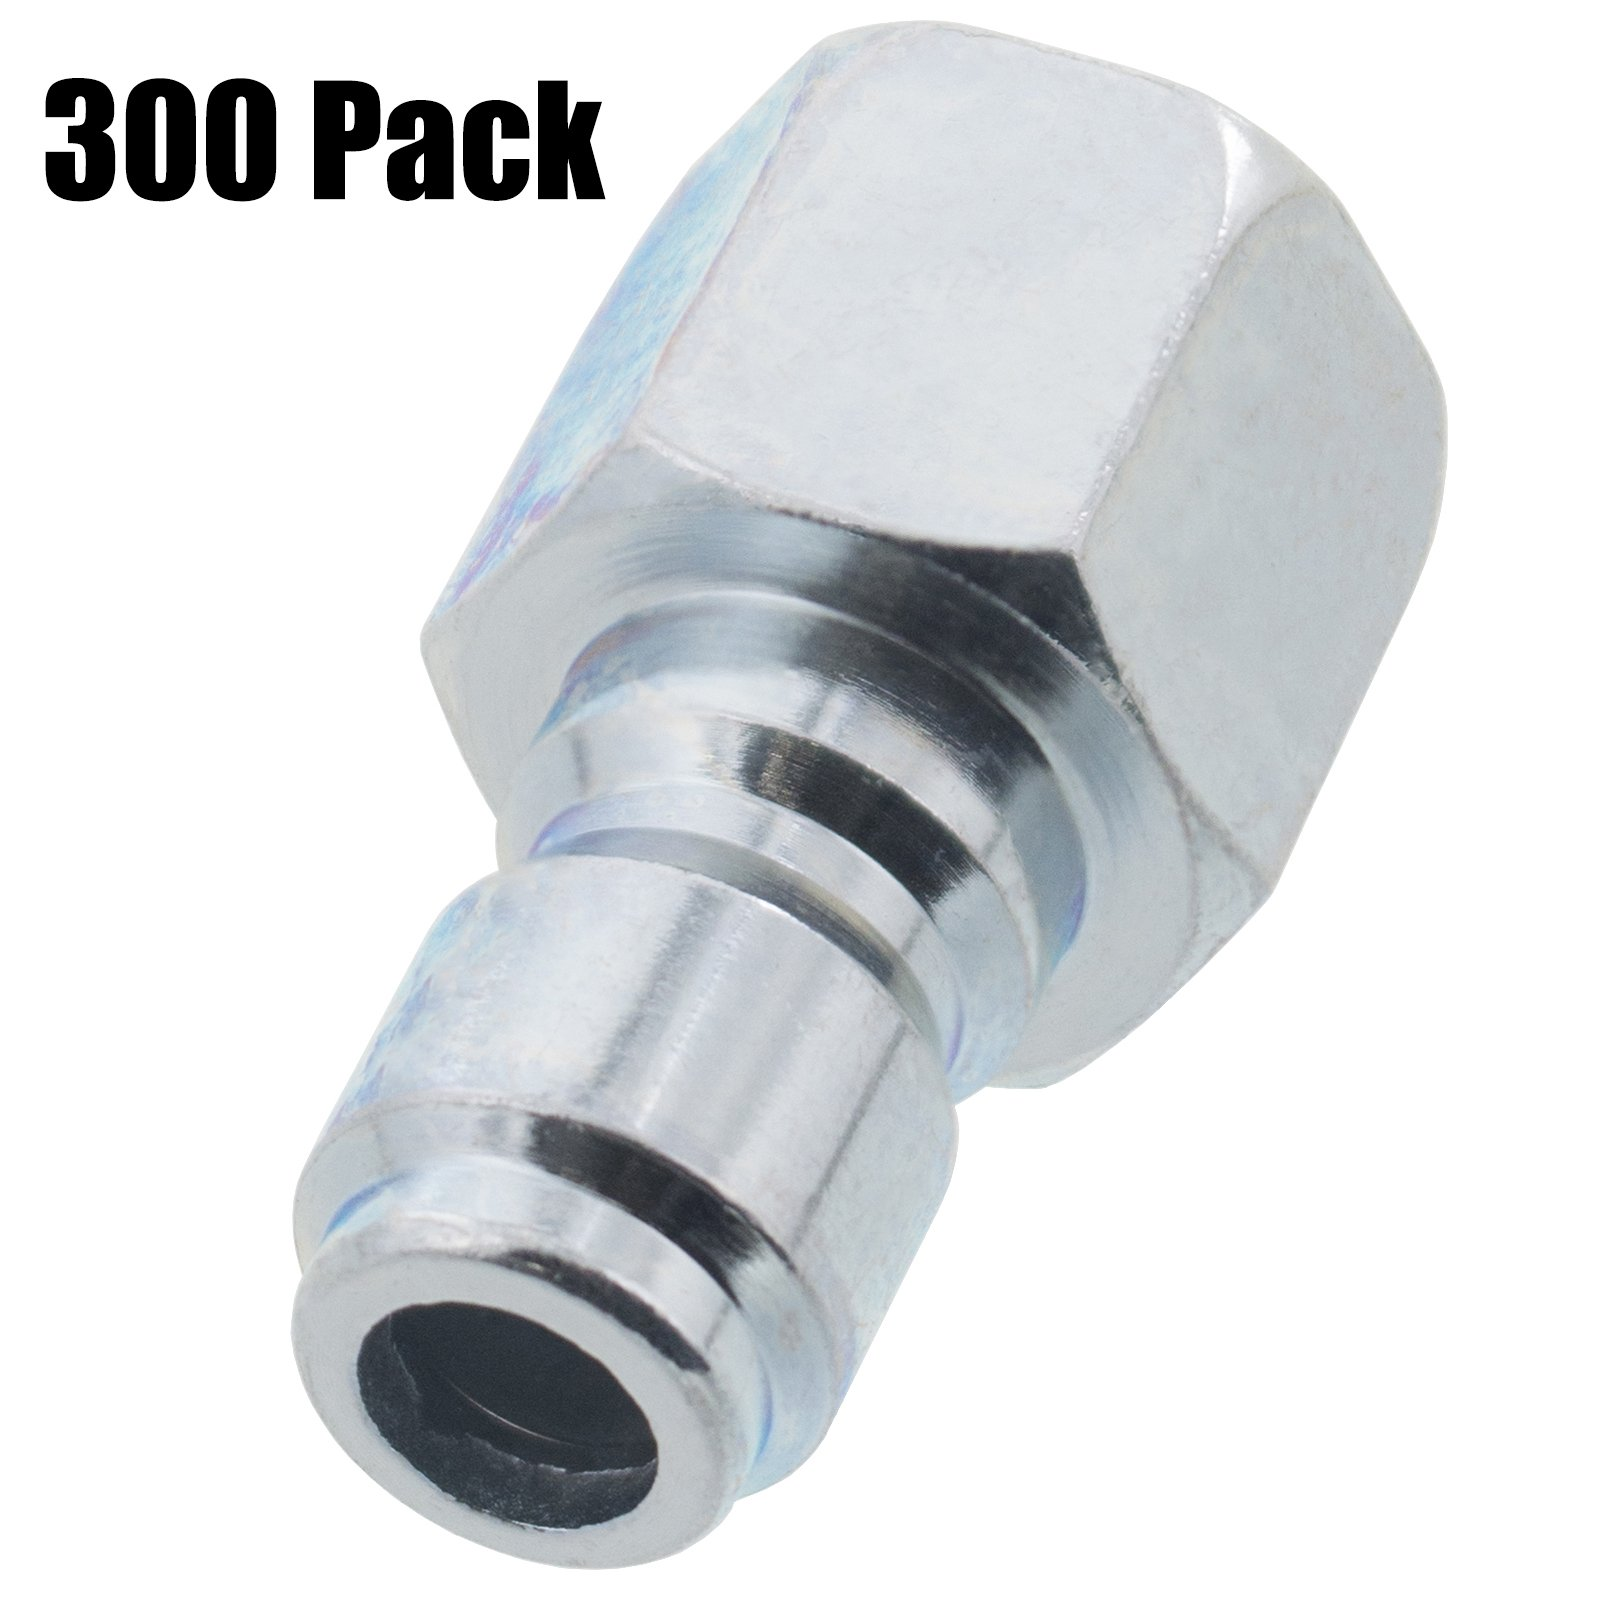 Erie Tools 300 Pressure Washer 3/8in. Female NPT to Quick Connect Plug Zinc Plated Coupler High Temp 4000 PSI 10.5 GPM by Erie Tools